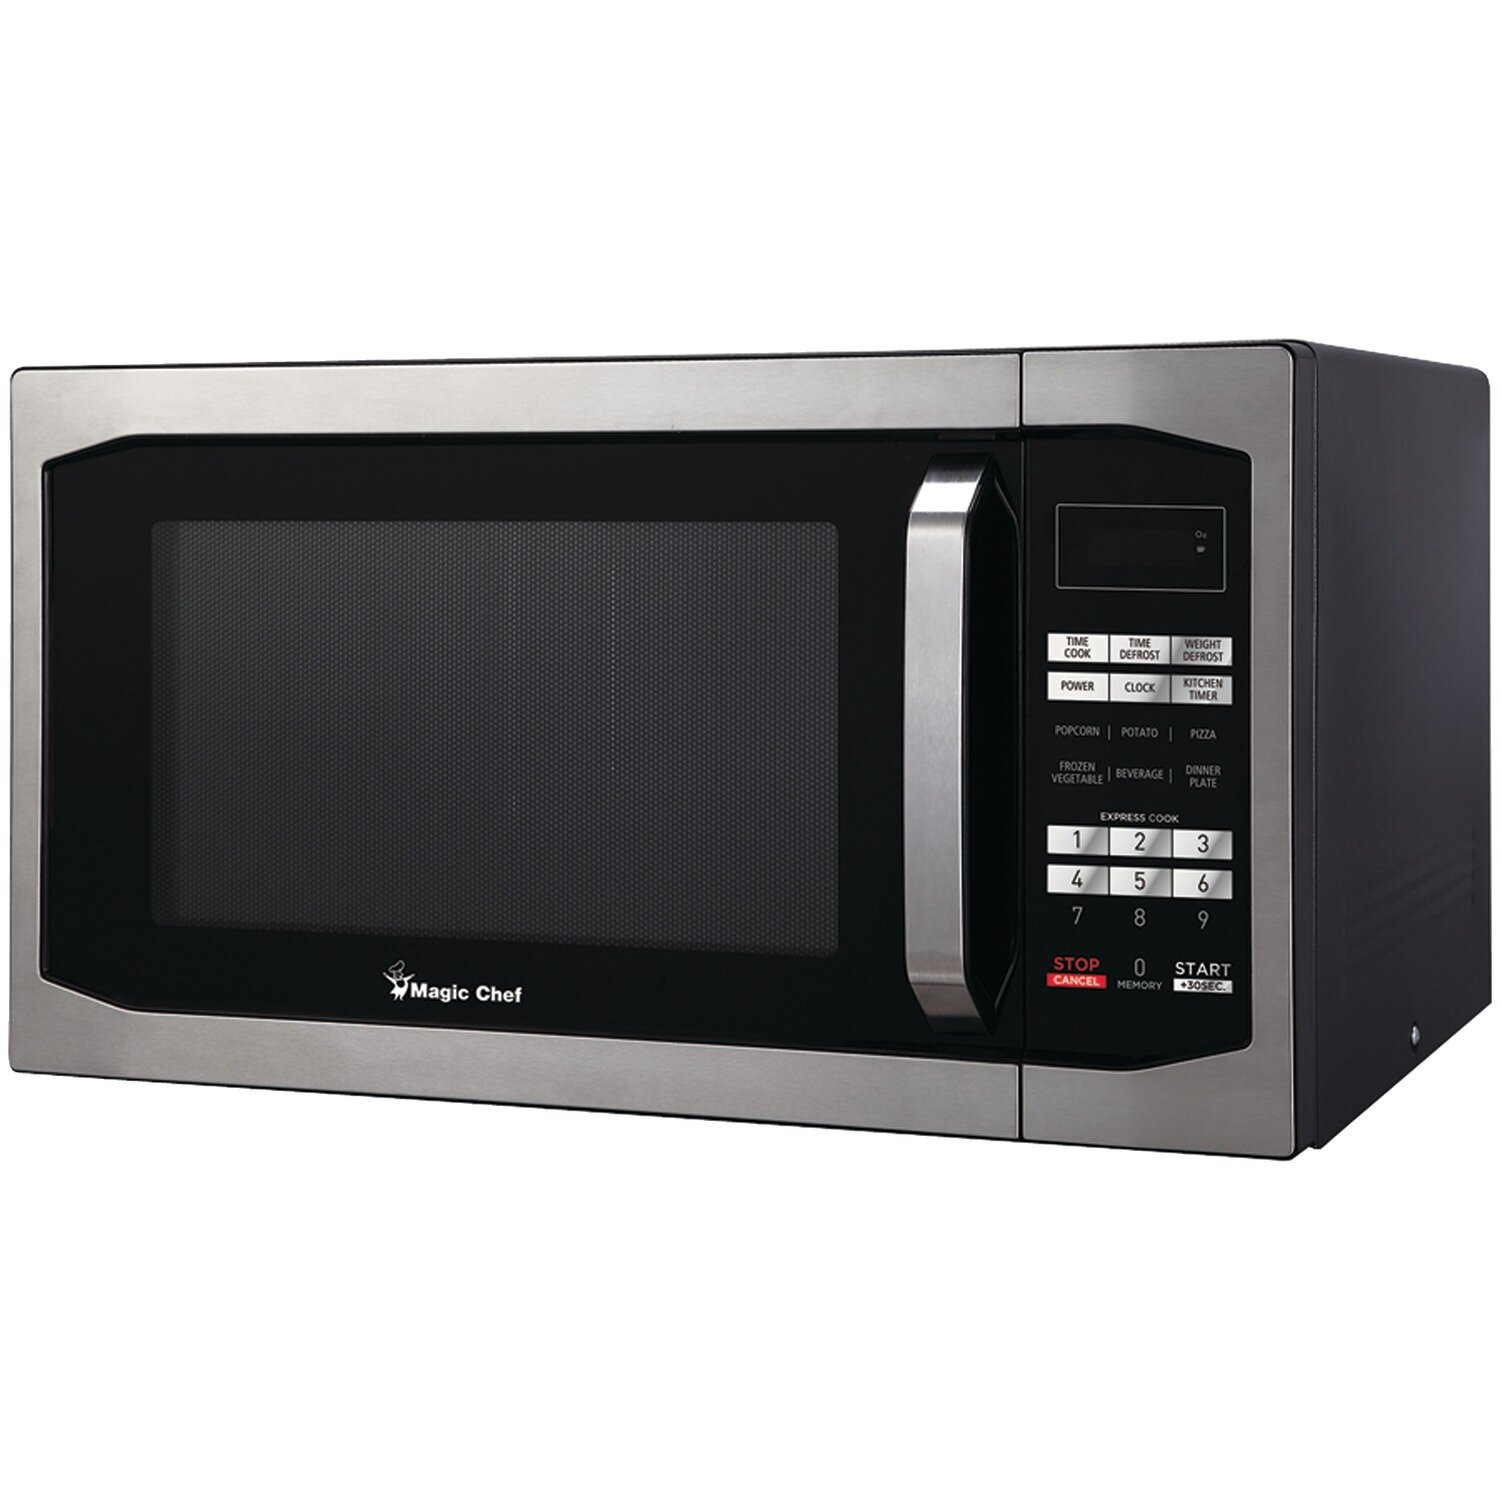 Countertop Microwave With Kitchen Timer Reviews Wayfair